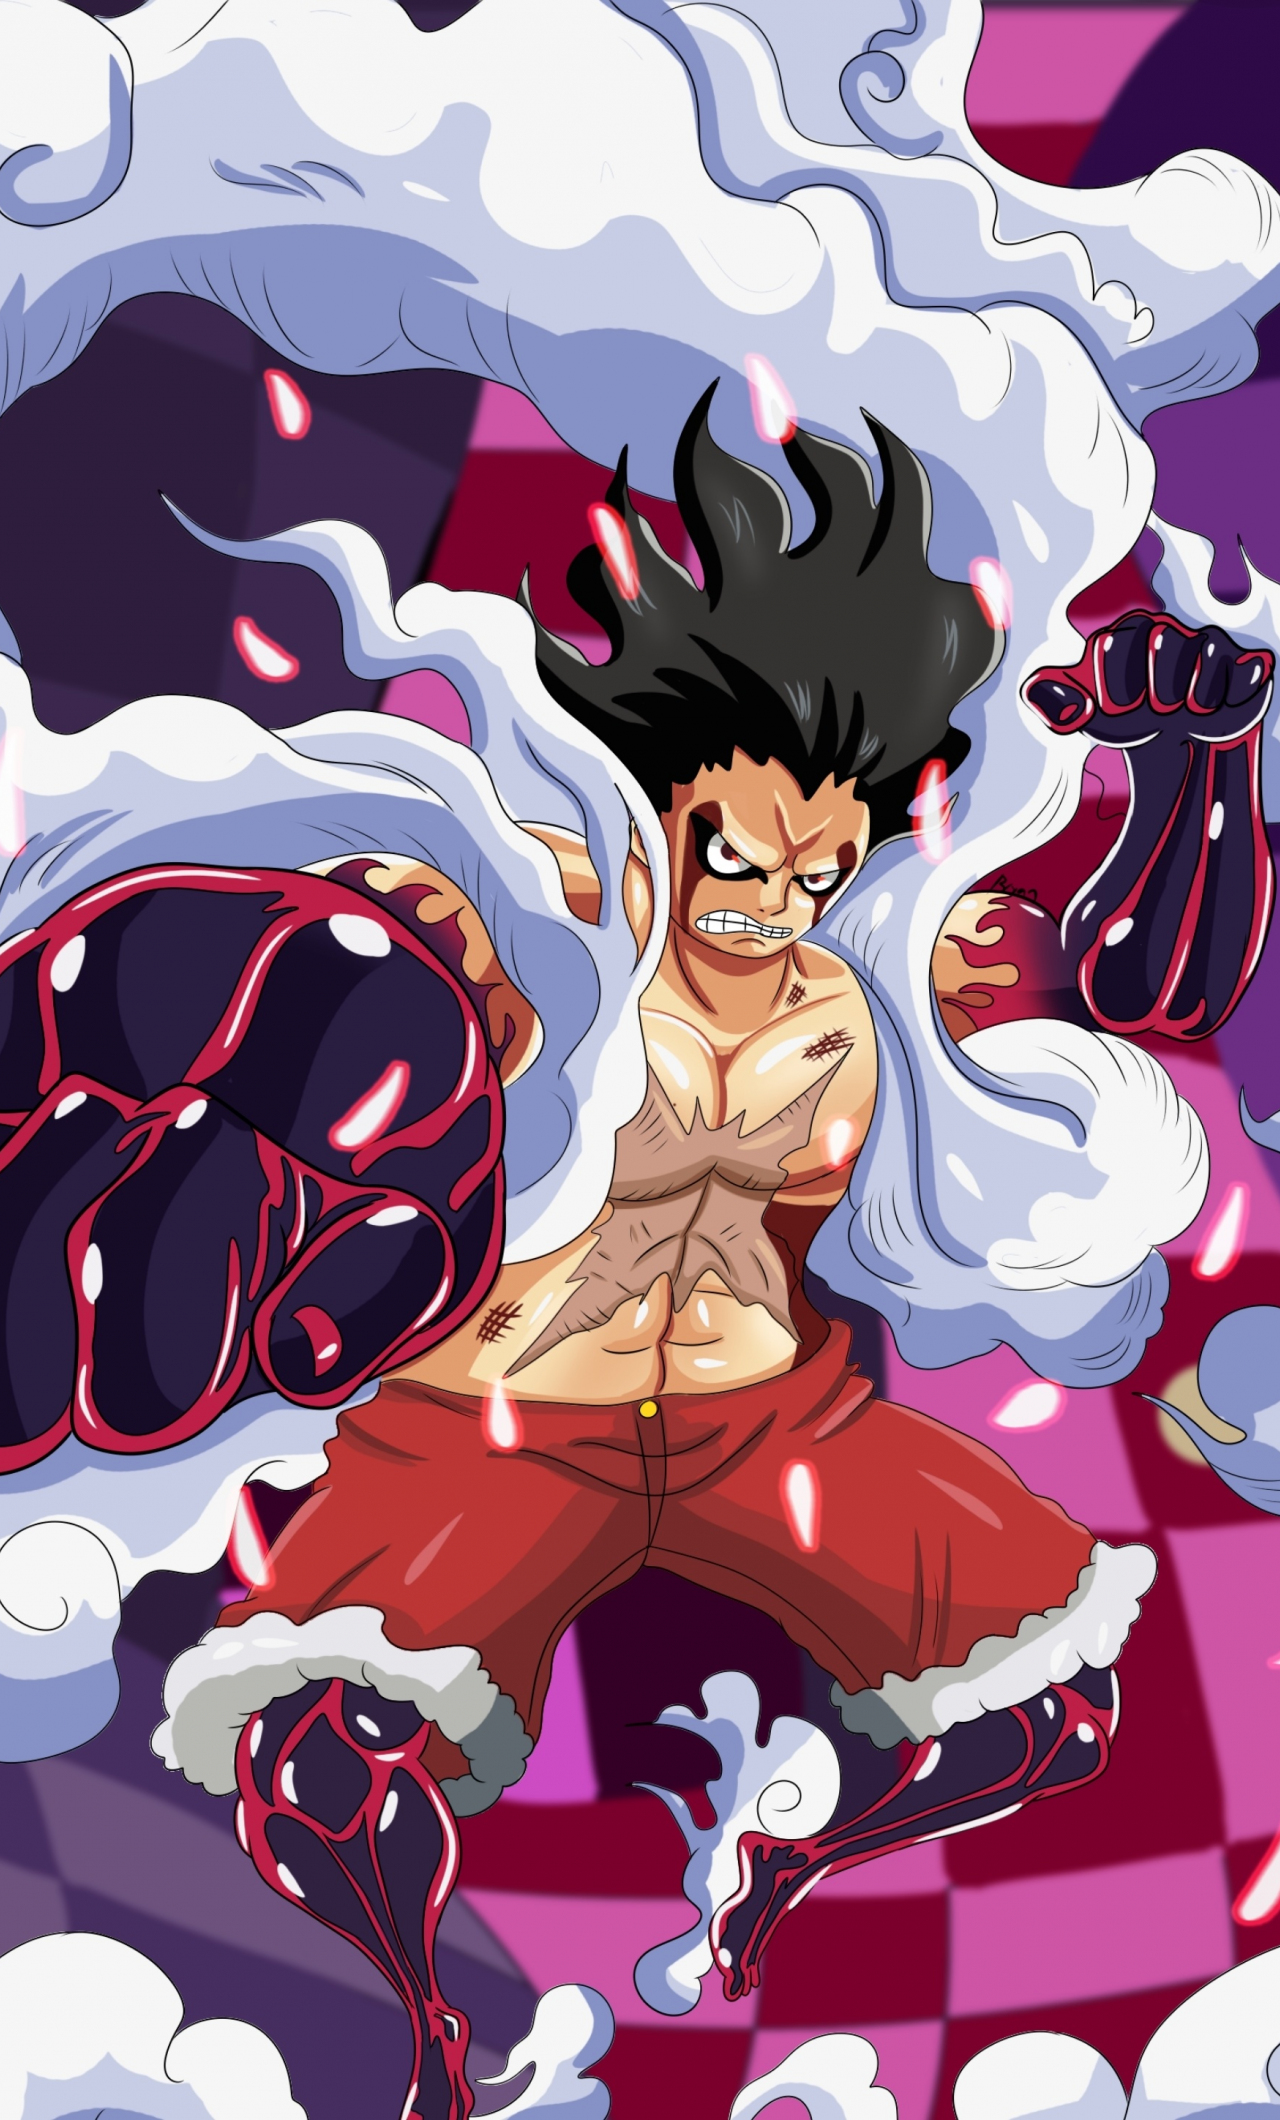 Download 1280x2120 Wallpaper Artwork One Piece Monkey D Luffy Iphone 6 Plus 1280x2120 Hd Image Background 10090